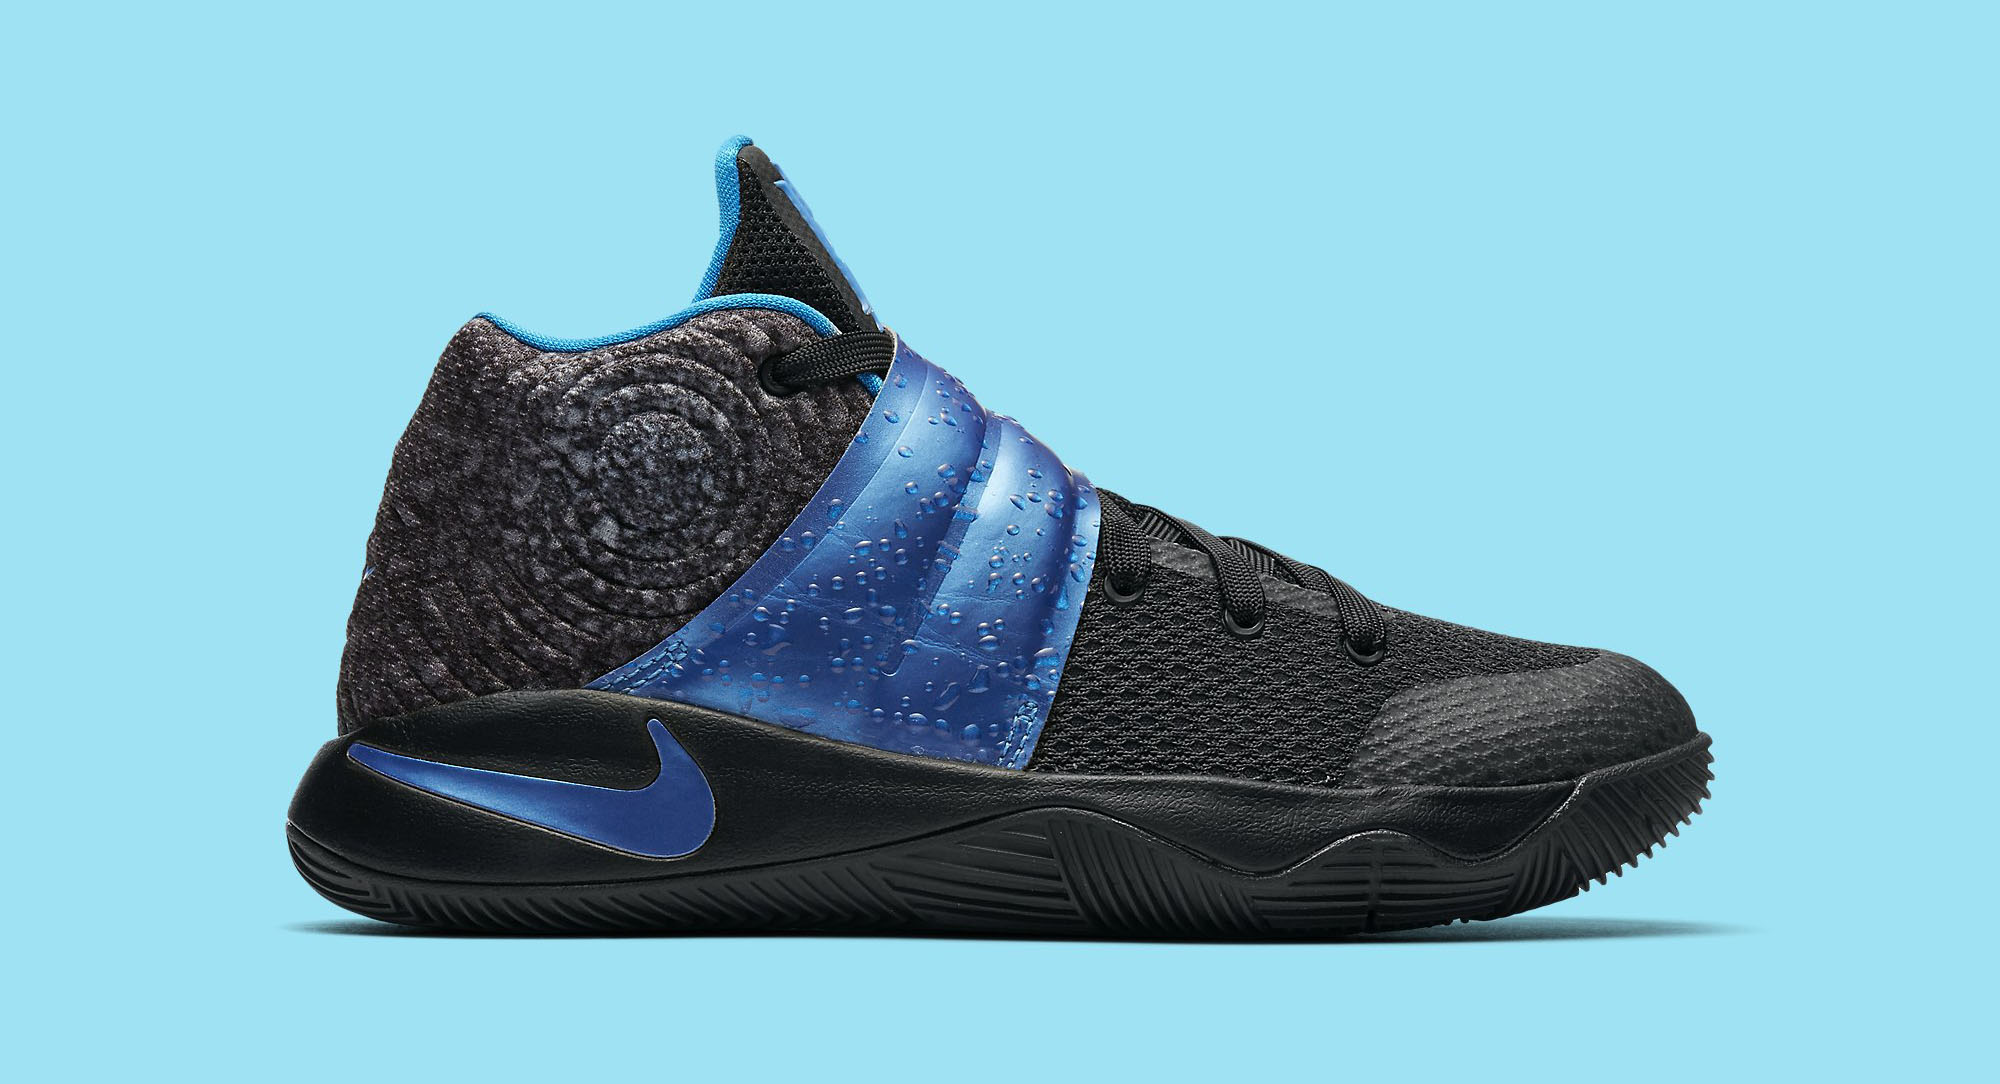 Kyrie irving all star shoes